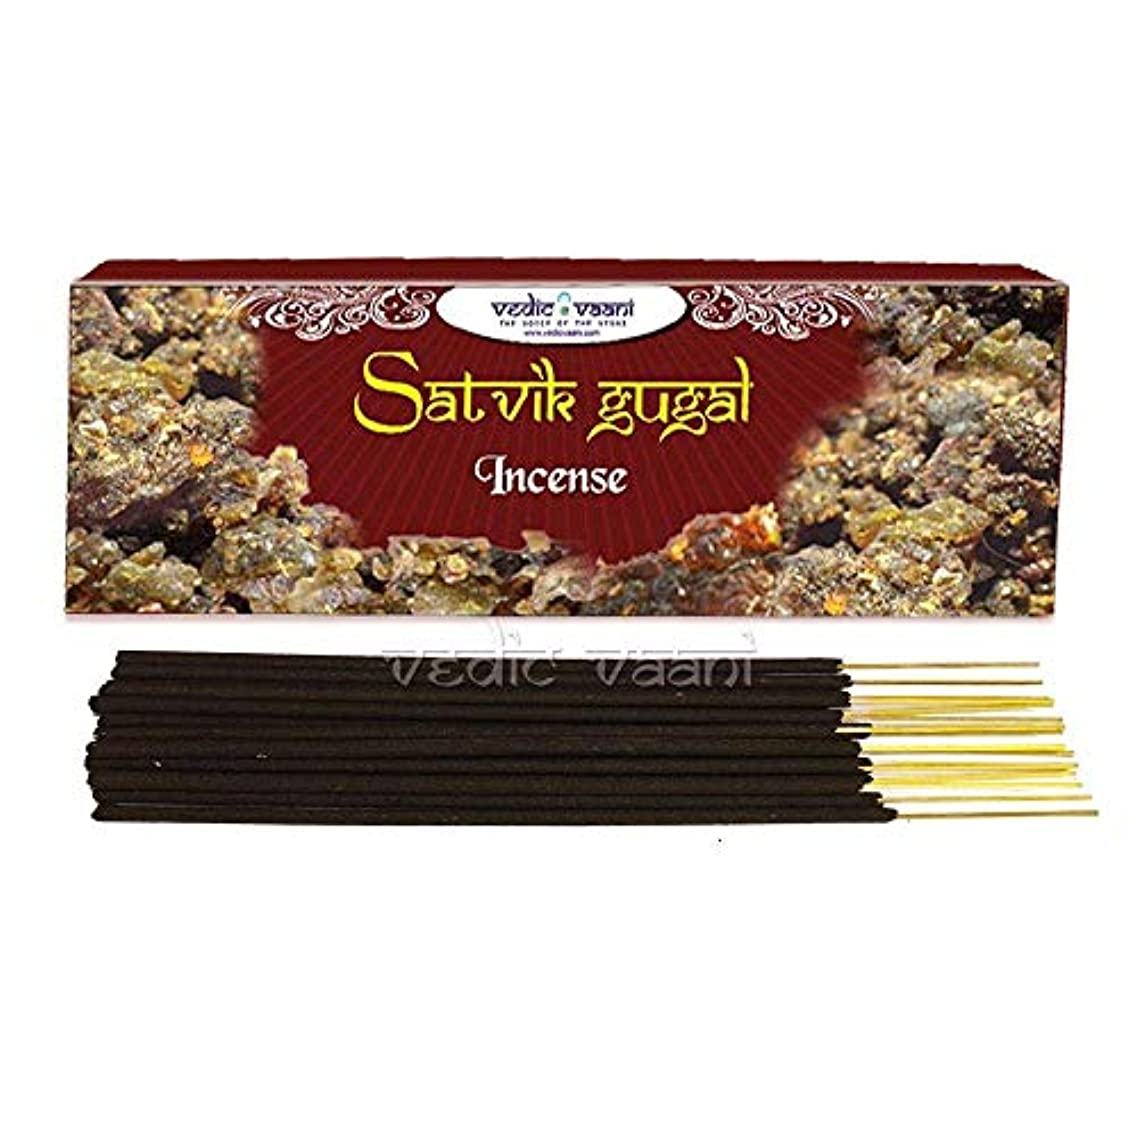 仮定する多くの危険がある状況旅客Vedic Vaani Satvik Gugal Dhoop Hand Rolled Spiritual Perfume Gugal Fragrance Agarbatti Incense Sticks for Offering...